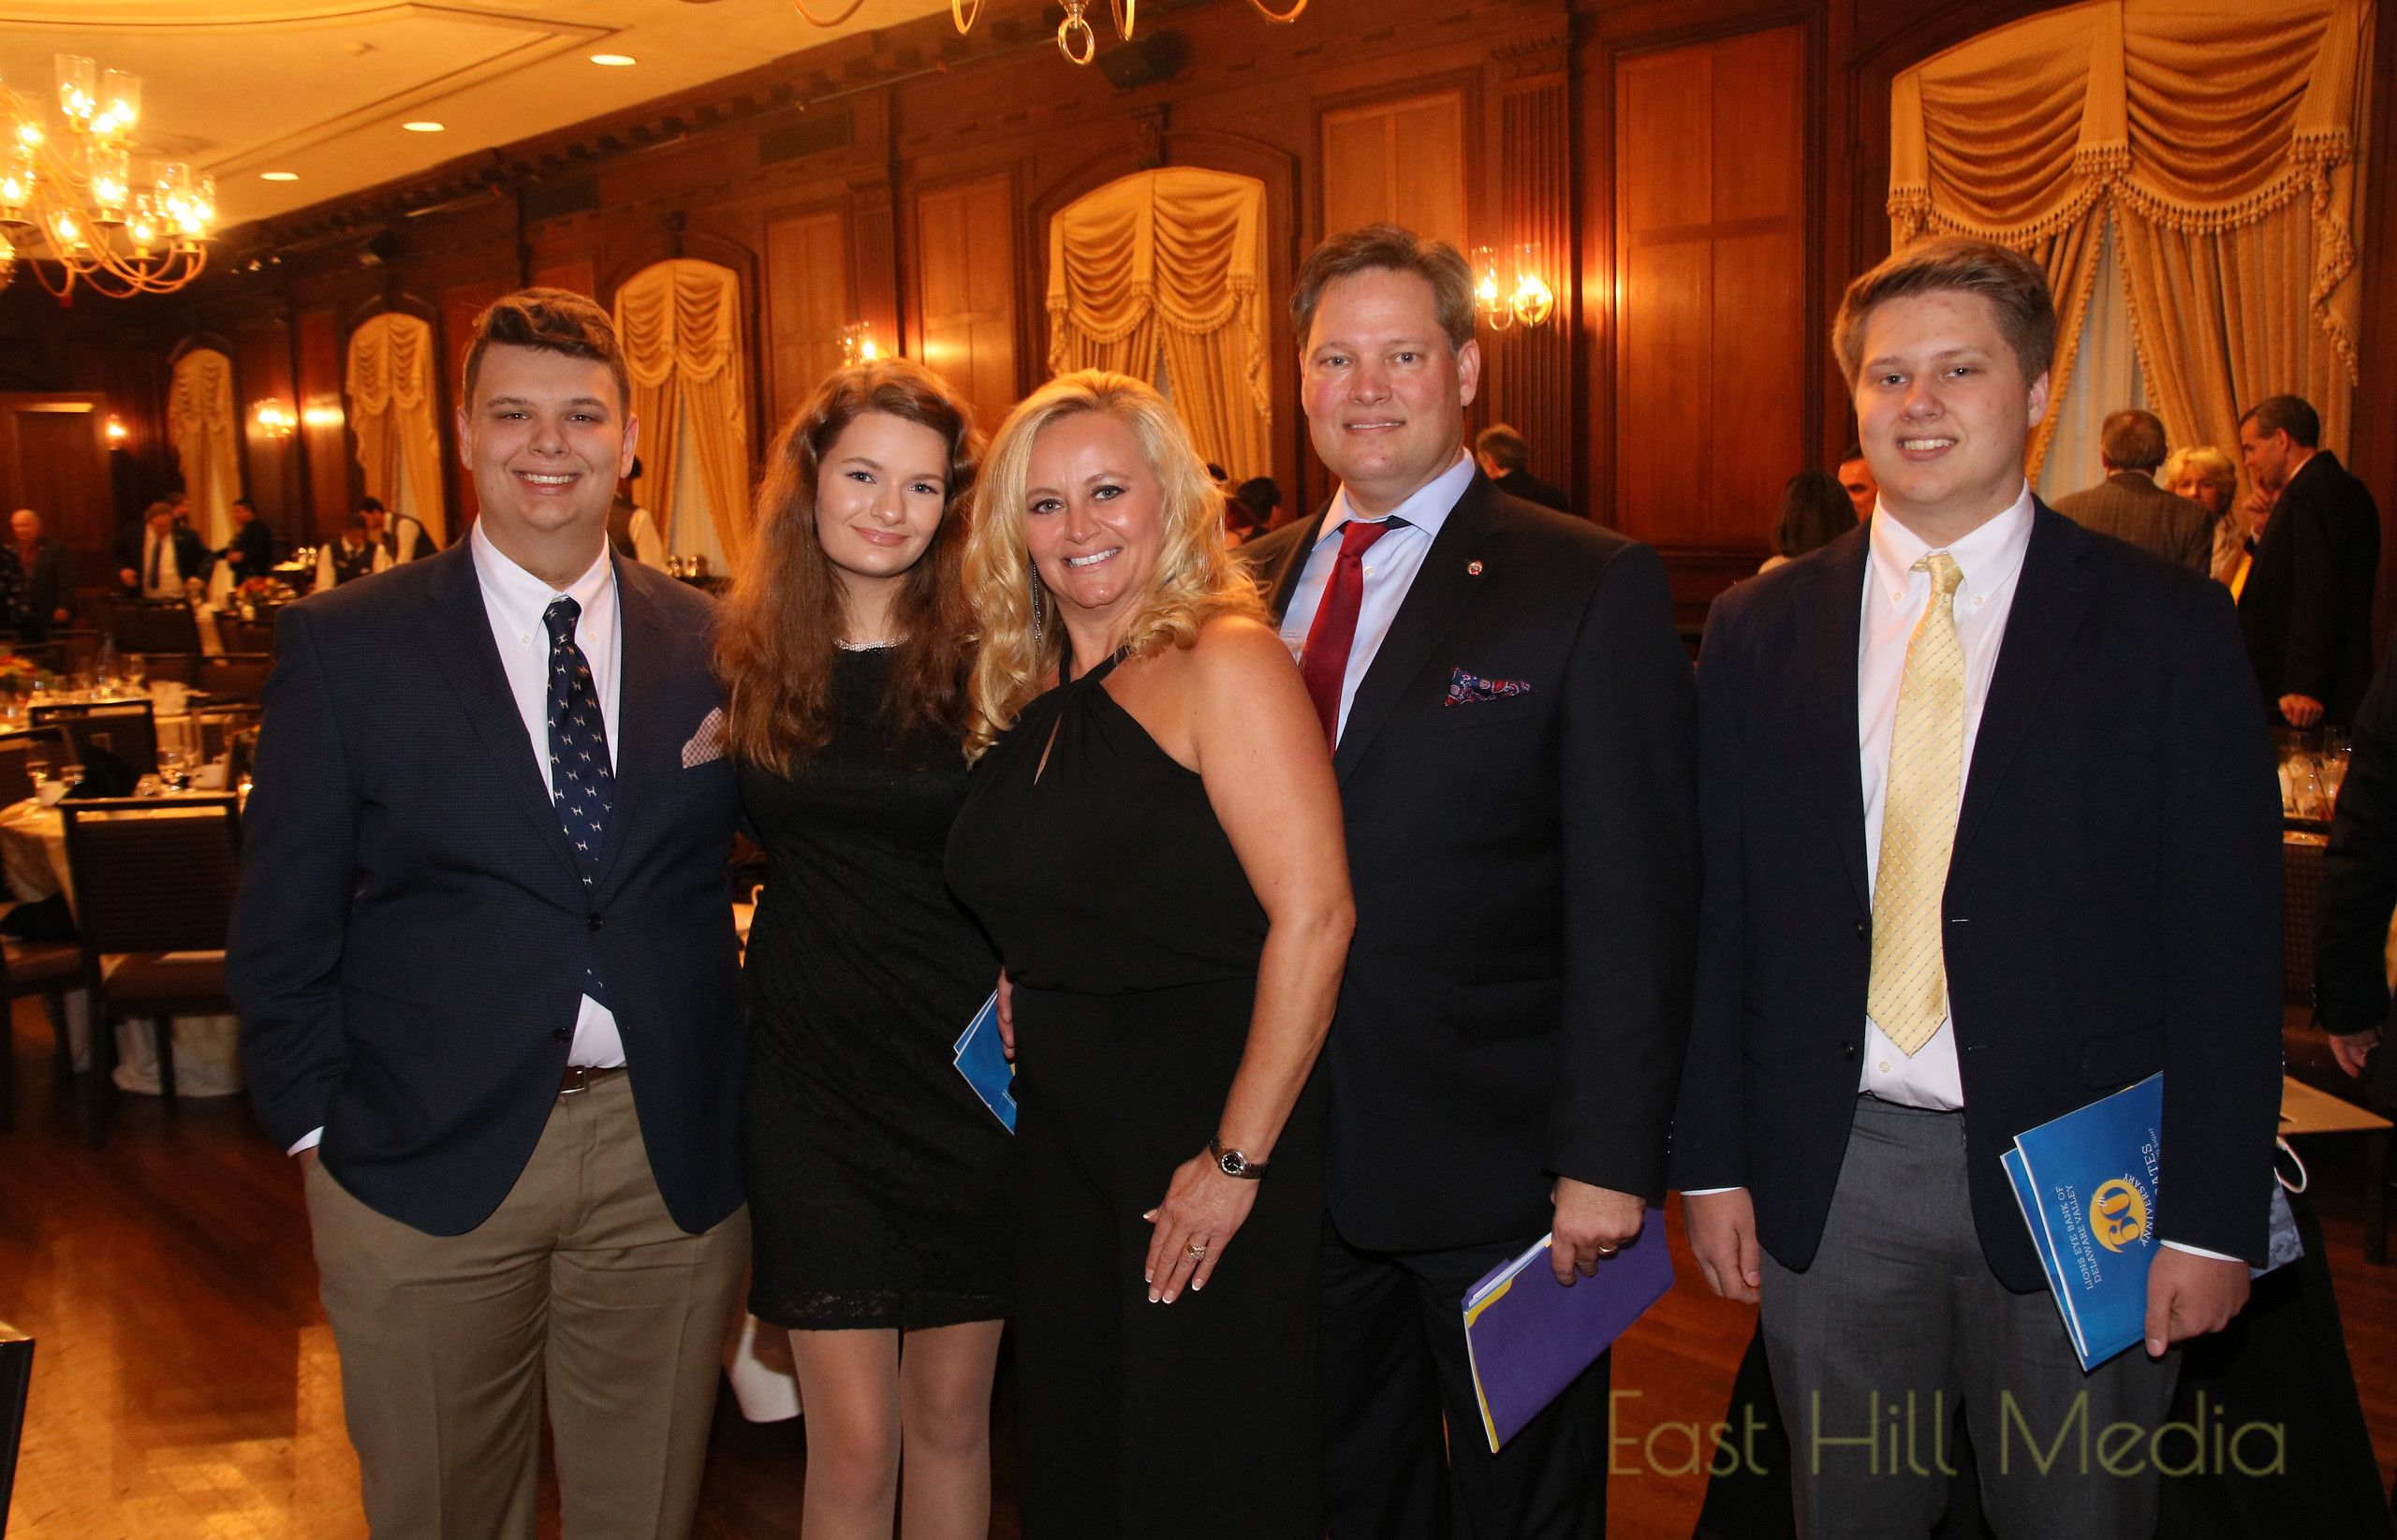 Lions Eye Bank 60th Anniversary Awards Ceremony